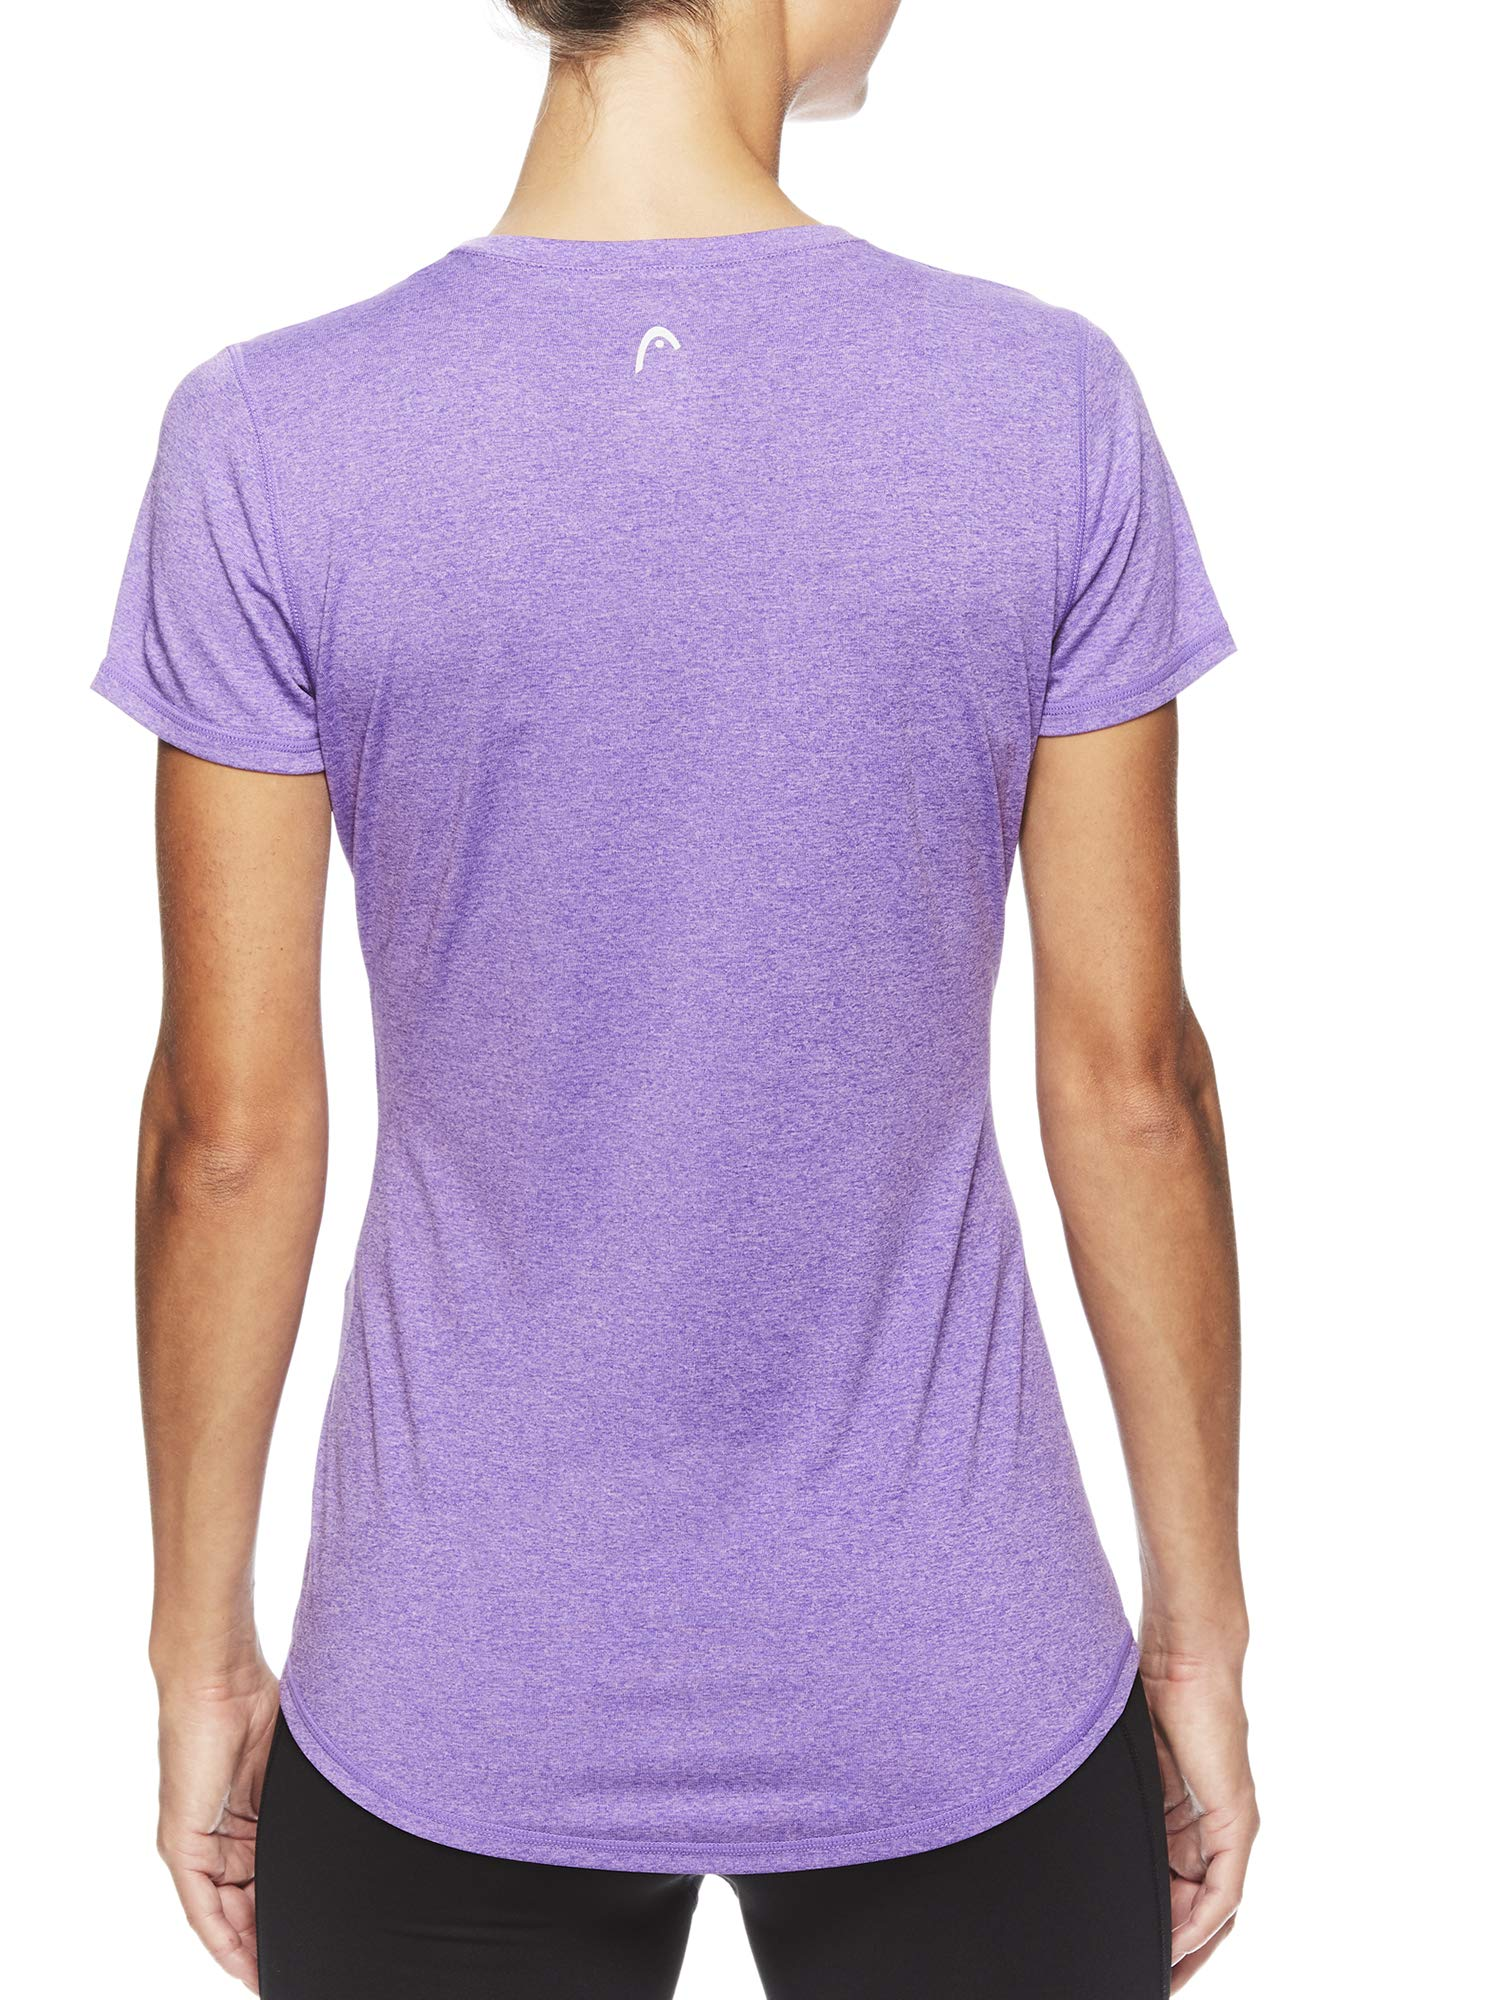 HEAD Women's Brianna Shirred Short Sleeve Workout T-Shirt - Marled Performance Crew Neck Activewear Top - Brianna Chive Blossom Heather, X-Small by HEAD (Image #3)